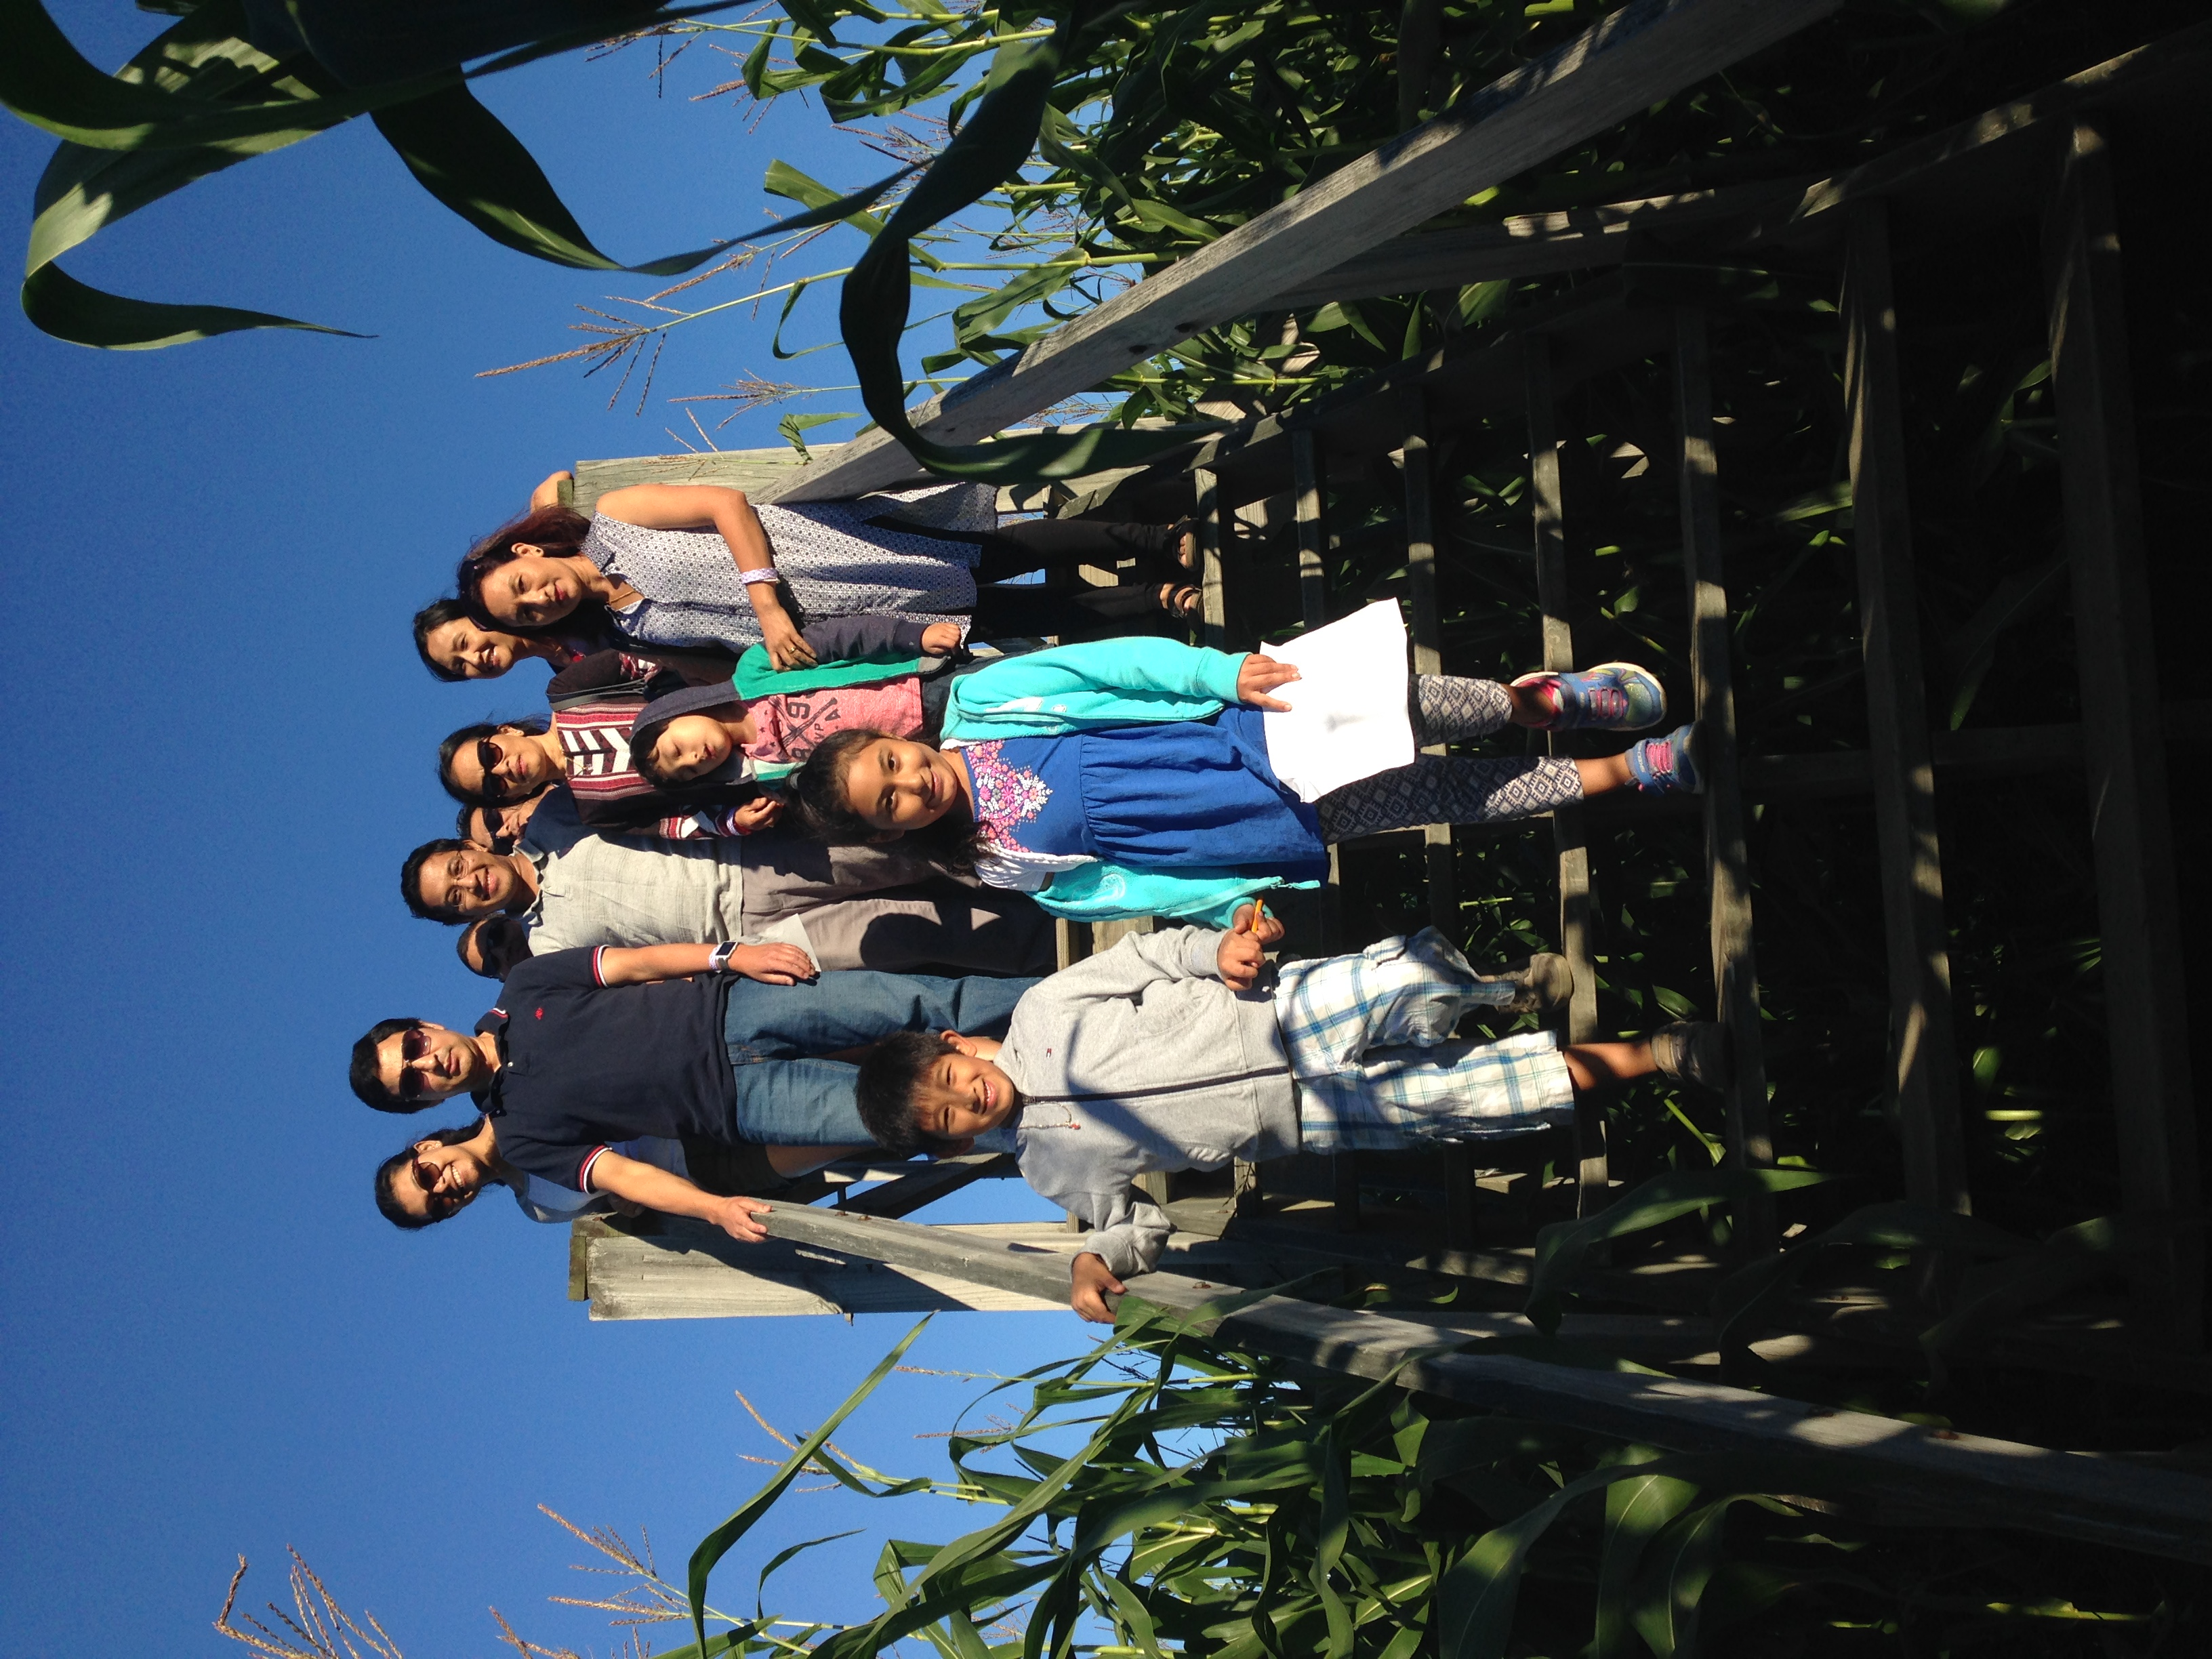 Beans & Greens Farm - cornmaze family bridge